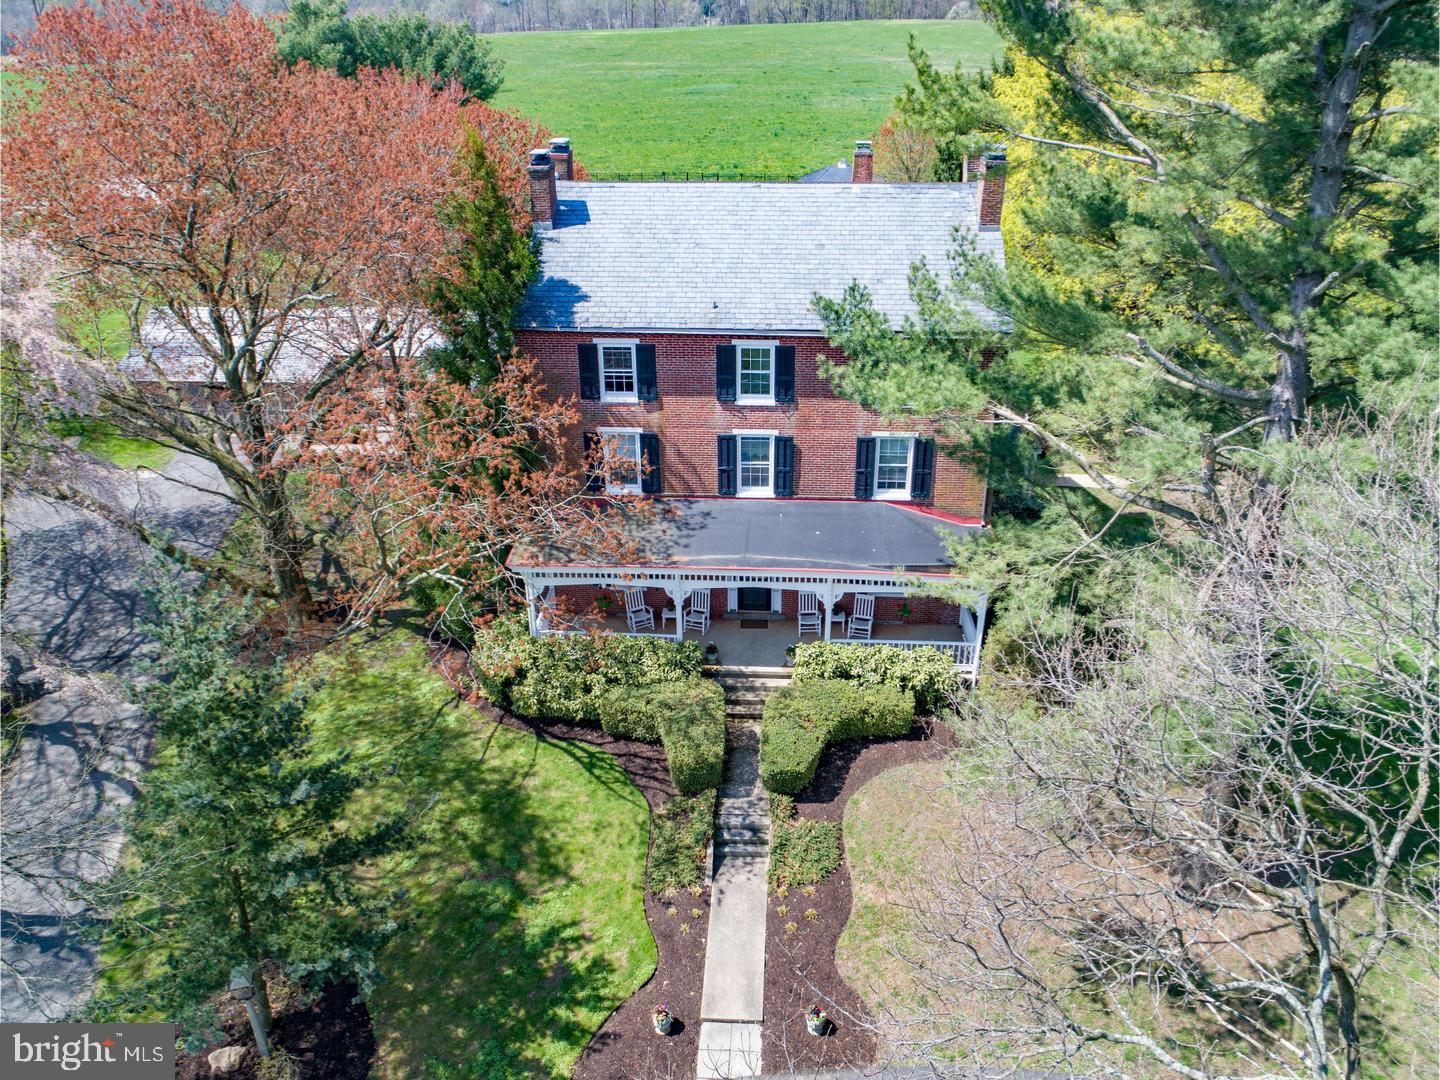 Welcome to Twin Chimneys, Circa 1762!  This stately historic Federal style home has three main periods of construction and sits high with sweeping vistas.  The original stone two story farmhouse was built in 1762.  Many historical accents such as the original kitchen and over sized fireplace and bee hive oven remain and add to the historic charm.  In 1880 the three story brick Federal house was added and includes the grand central foyer entry which features a grand staircase that takes you up three floors.  The bricks for this part of the house are hand-made and were kilned on the property near the large sycamore tree that is by the White Clay Creek that wanders through the property.  The twin brick chimneys as well as multiple fireplaces were a necessity back then, and still adorn the home today.  Without compromising the original structures, the current owner added the Great Room and gourmet kitchen in 2008.  The Great Room features walls of windows and doors with views and access to the tiered stone patio, pool and hot tub area.  The original outside stone wall remains and adds a wonderful backdrop accent wall that matches the new stone floor-to- ceiling raised hearth gas fireplace.  This magnificent home boasts classic exceptional features throughout including deep window sills, original support timber with square nails and some of the original cabinetry throughout the home.  Beautiful wide plank pine flooring and radiant heat were installed on the first level.  Spacious